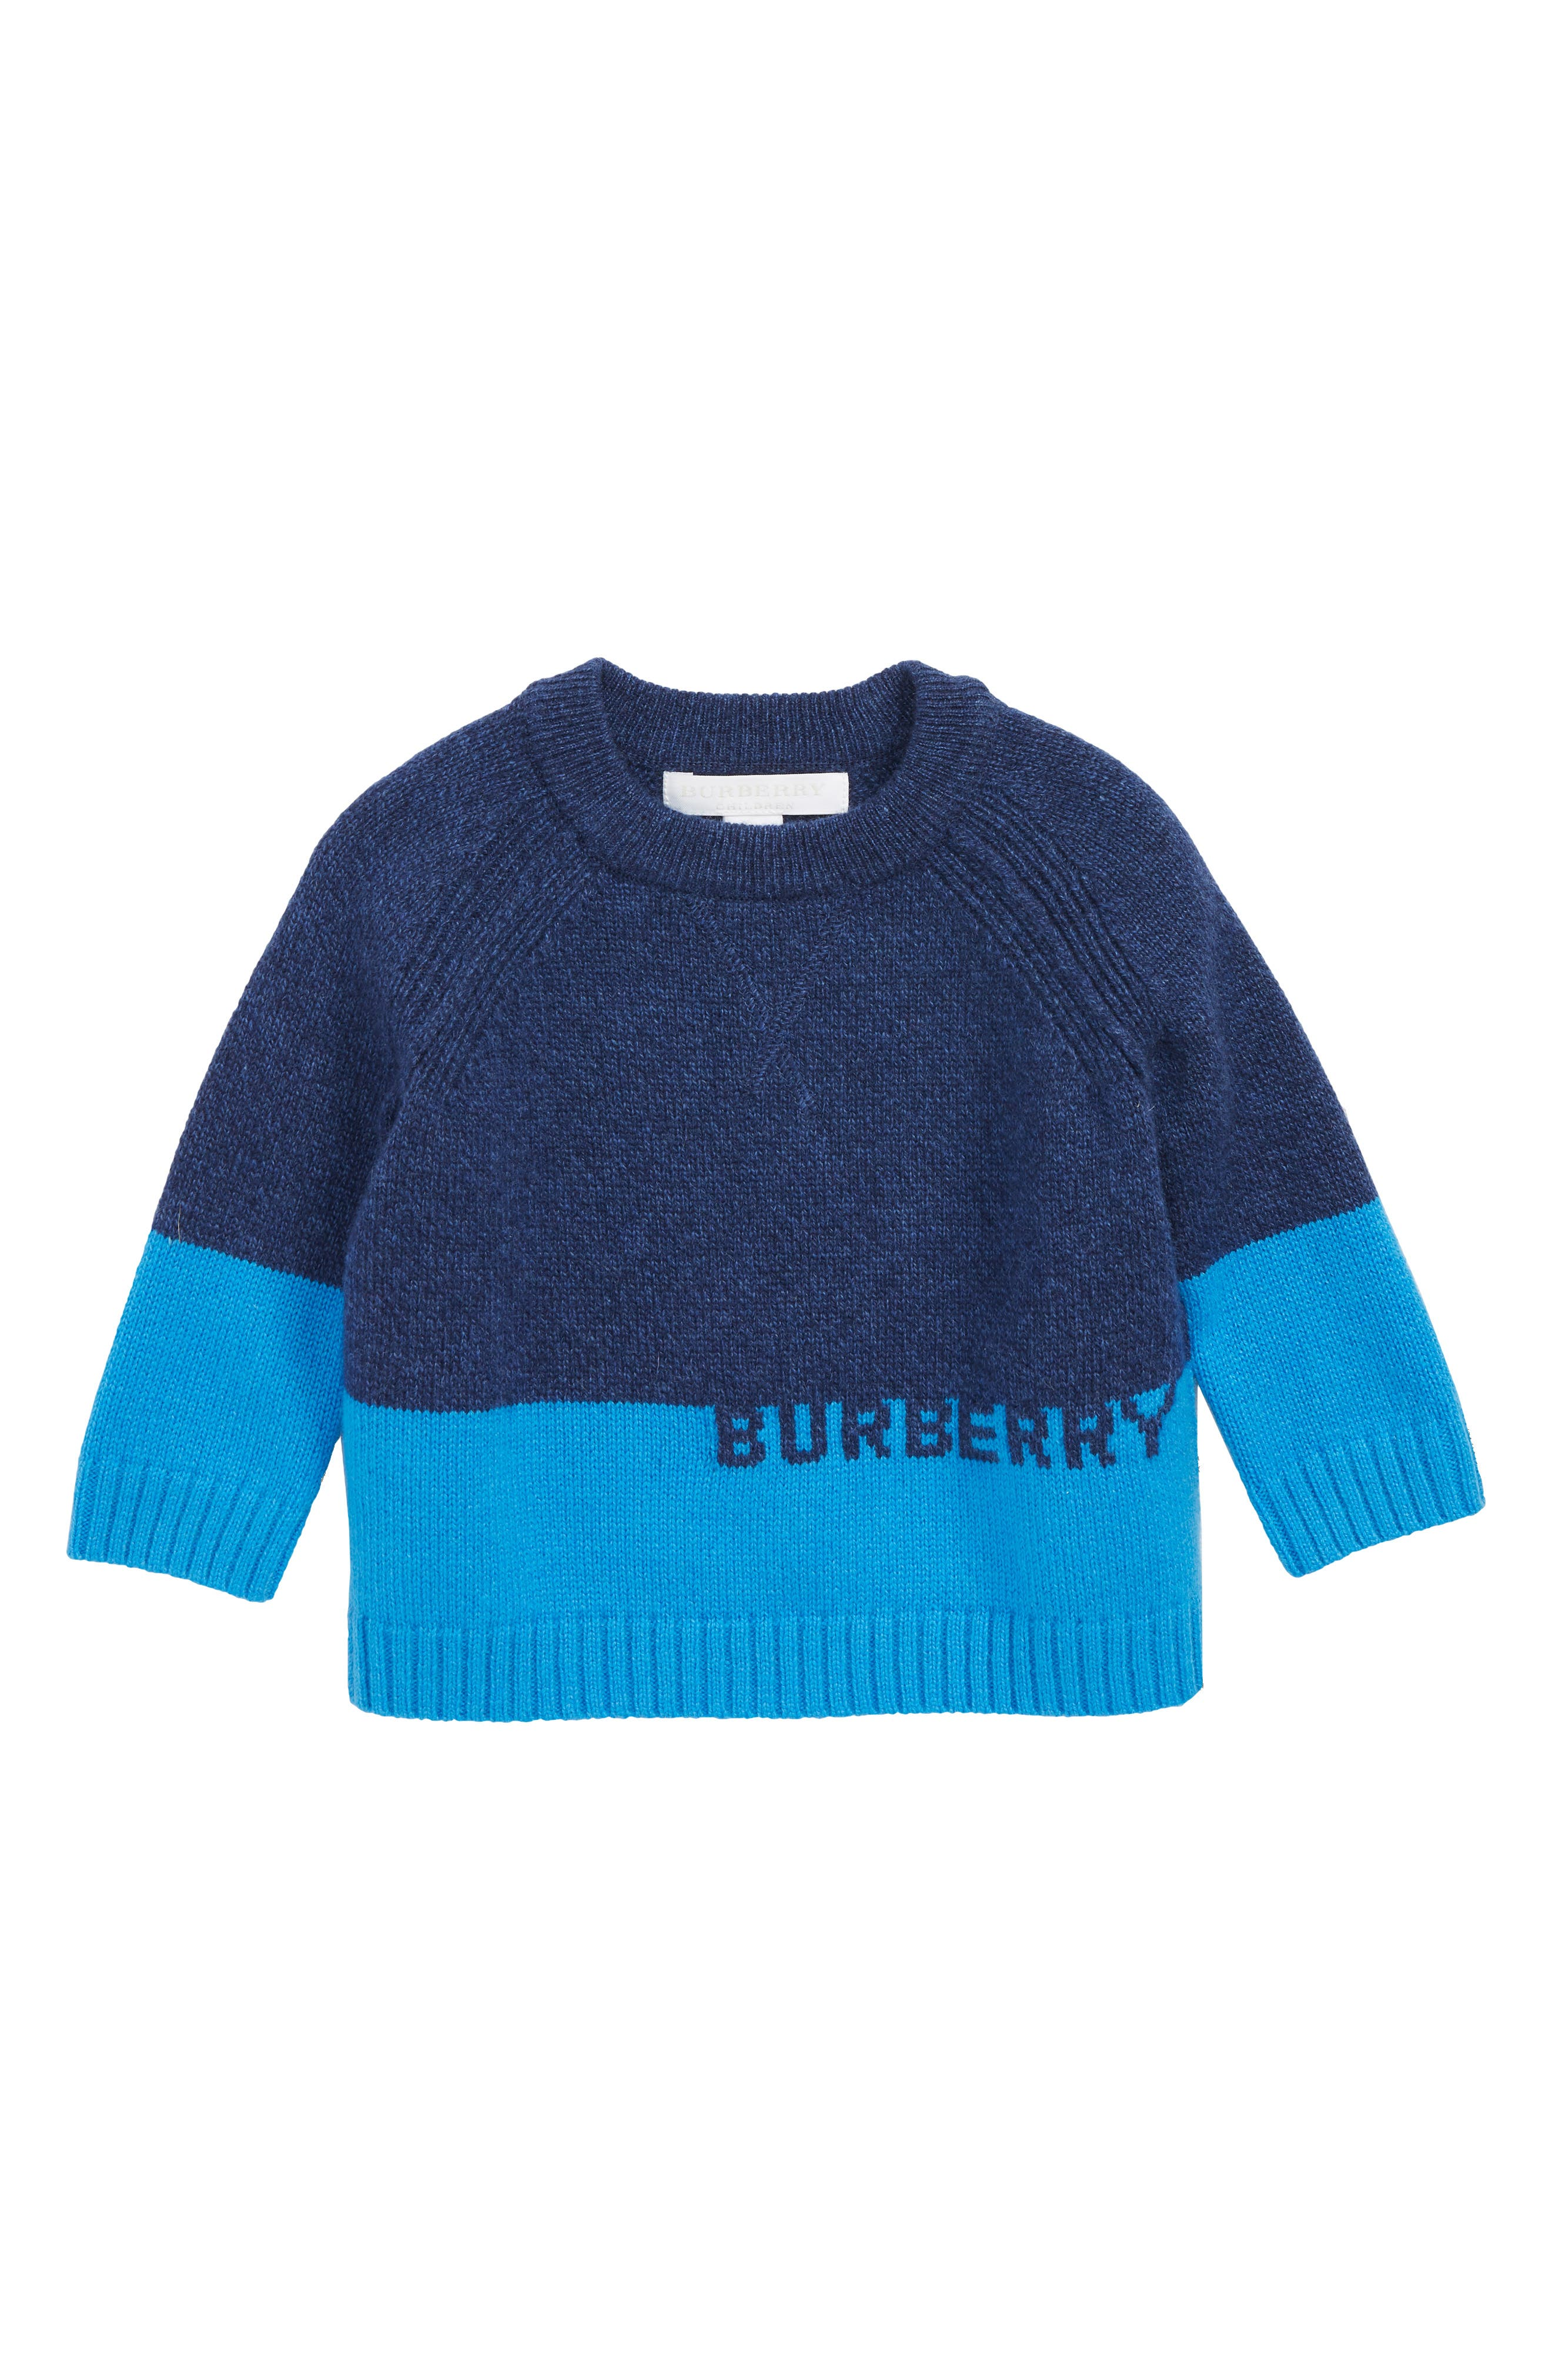 Alister Colorblock Cashmere Sweater,                             Main thumbnail 1, color,                             NAVY